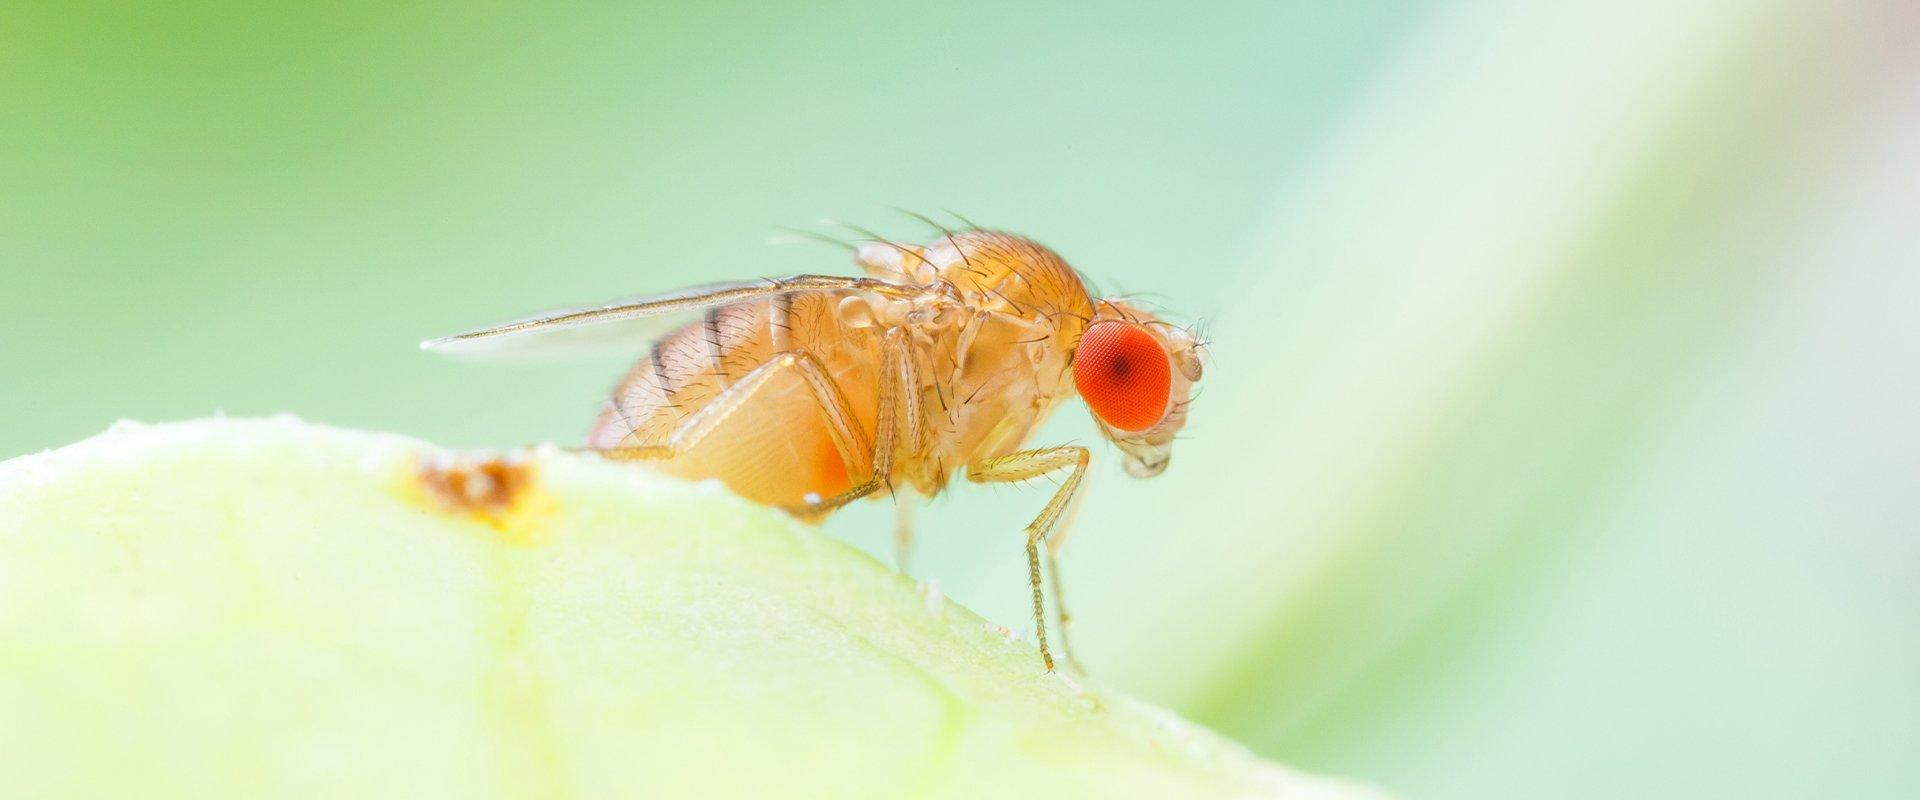 fruit fly on pear